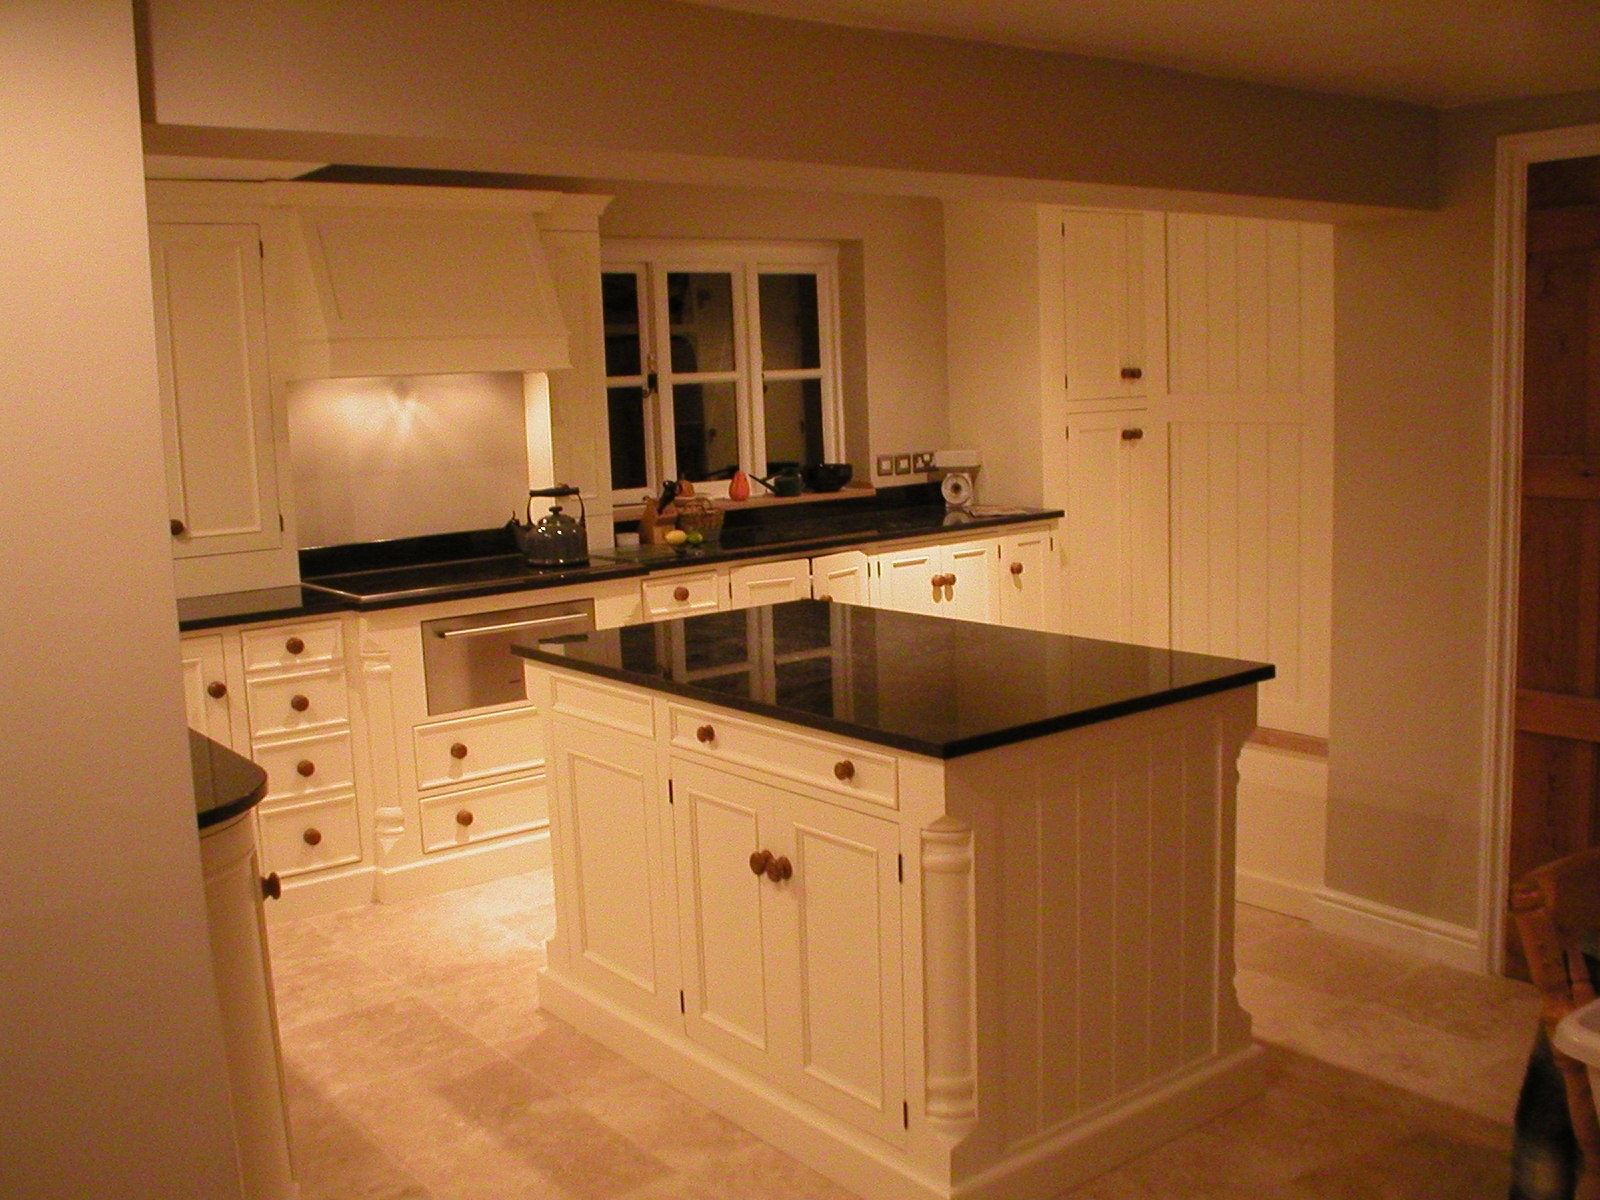 Bespoke kitchen units cabinets furniture handmade in kent for Kitchen design for units